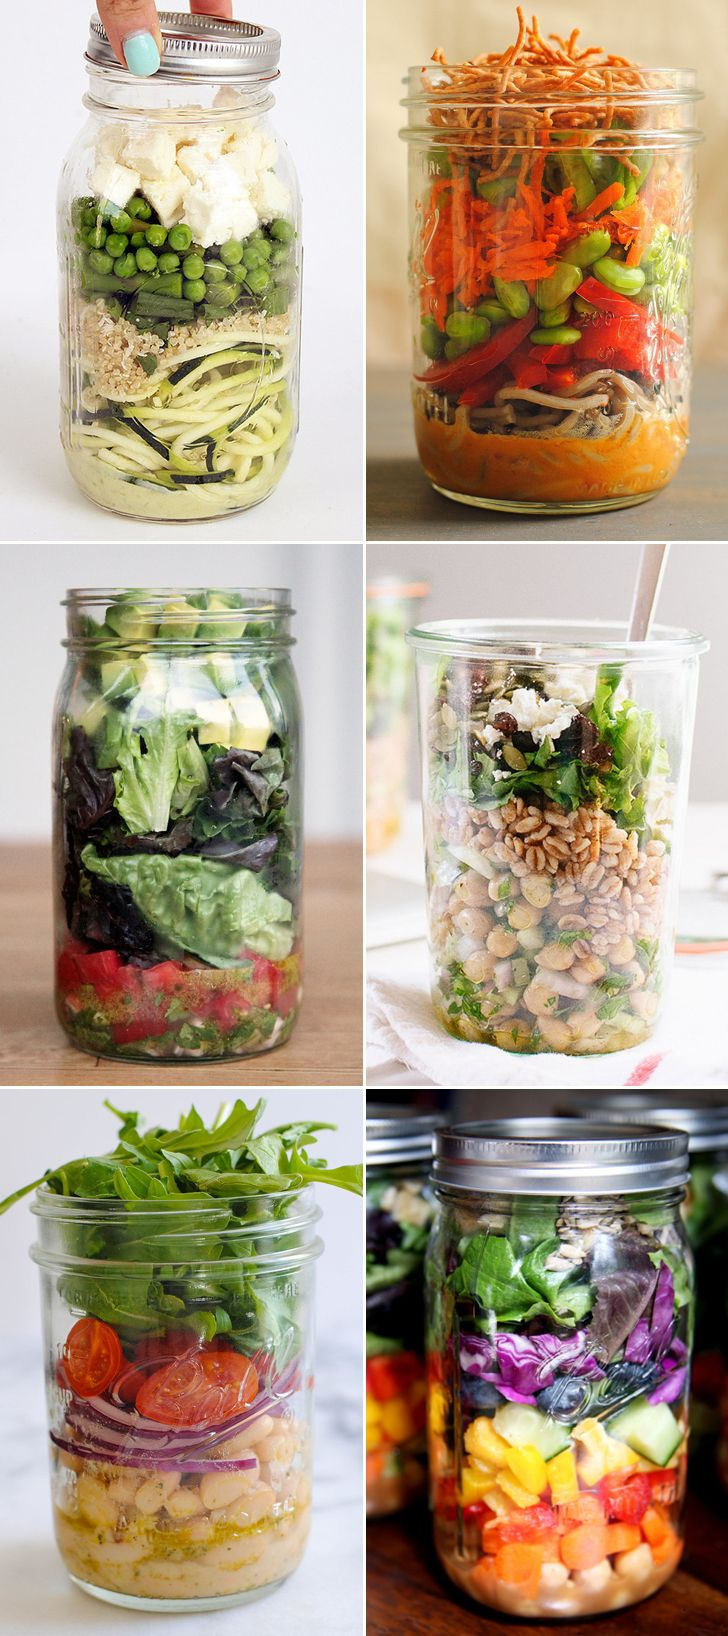 Marvelous Mason Jar Salad Recipes